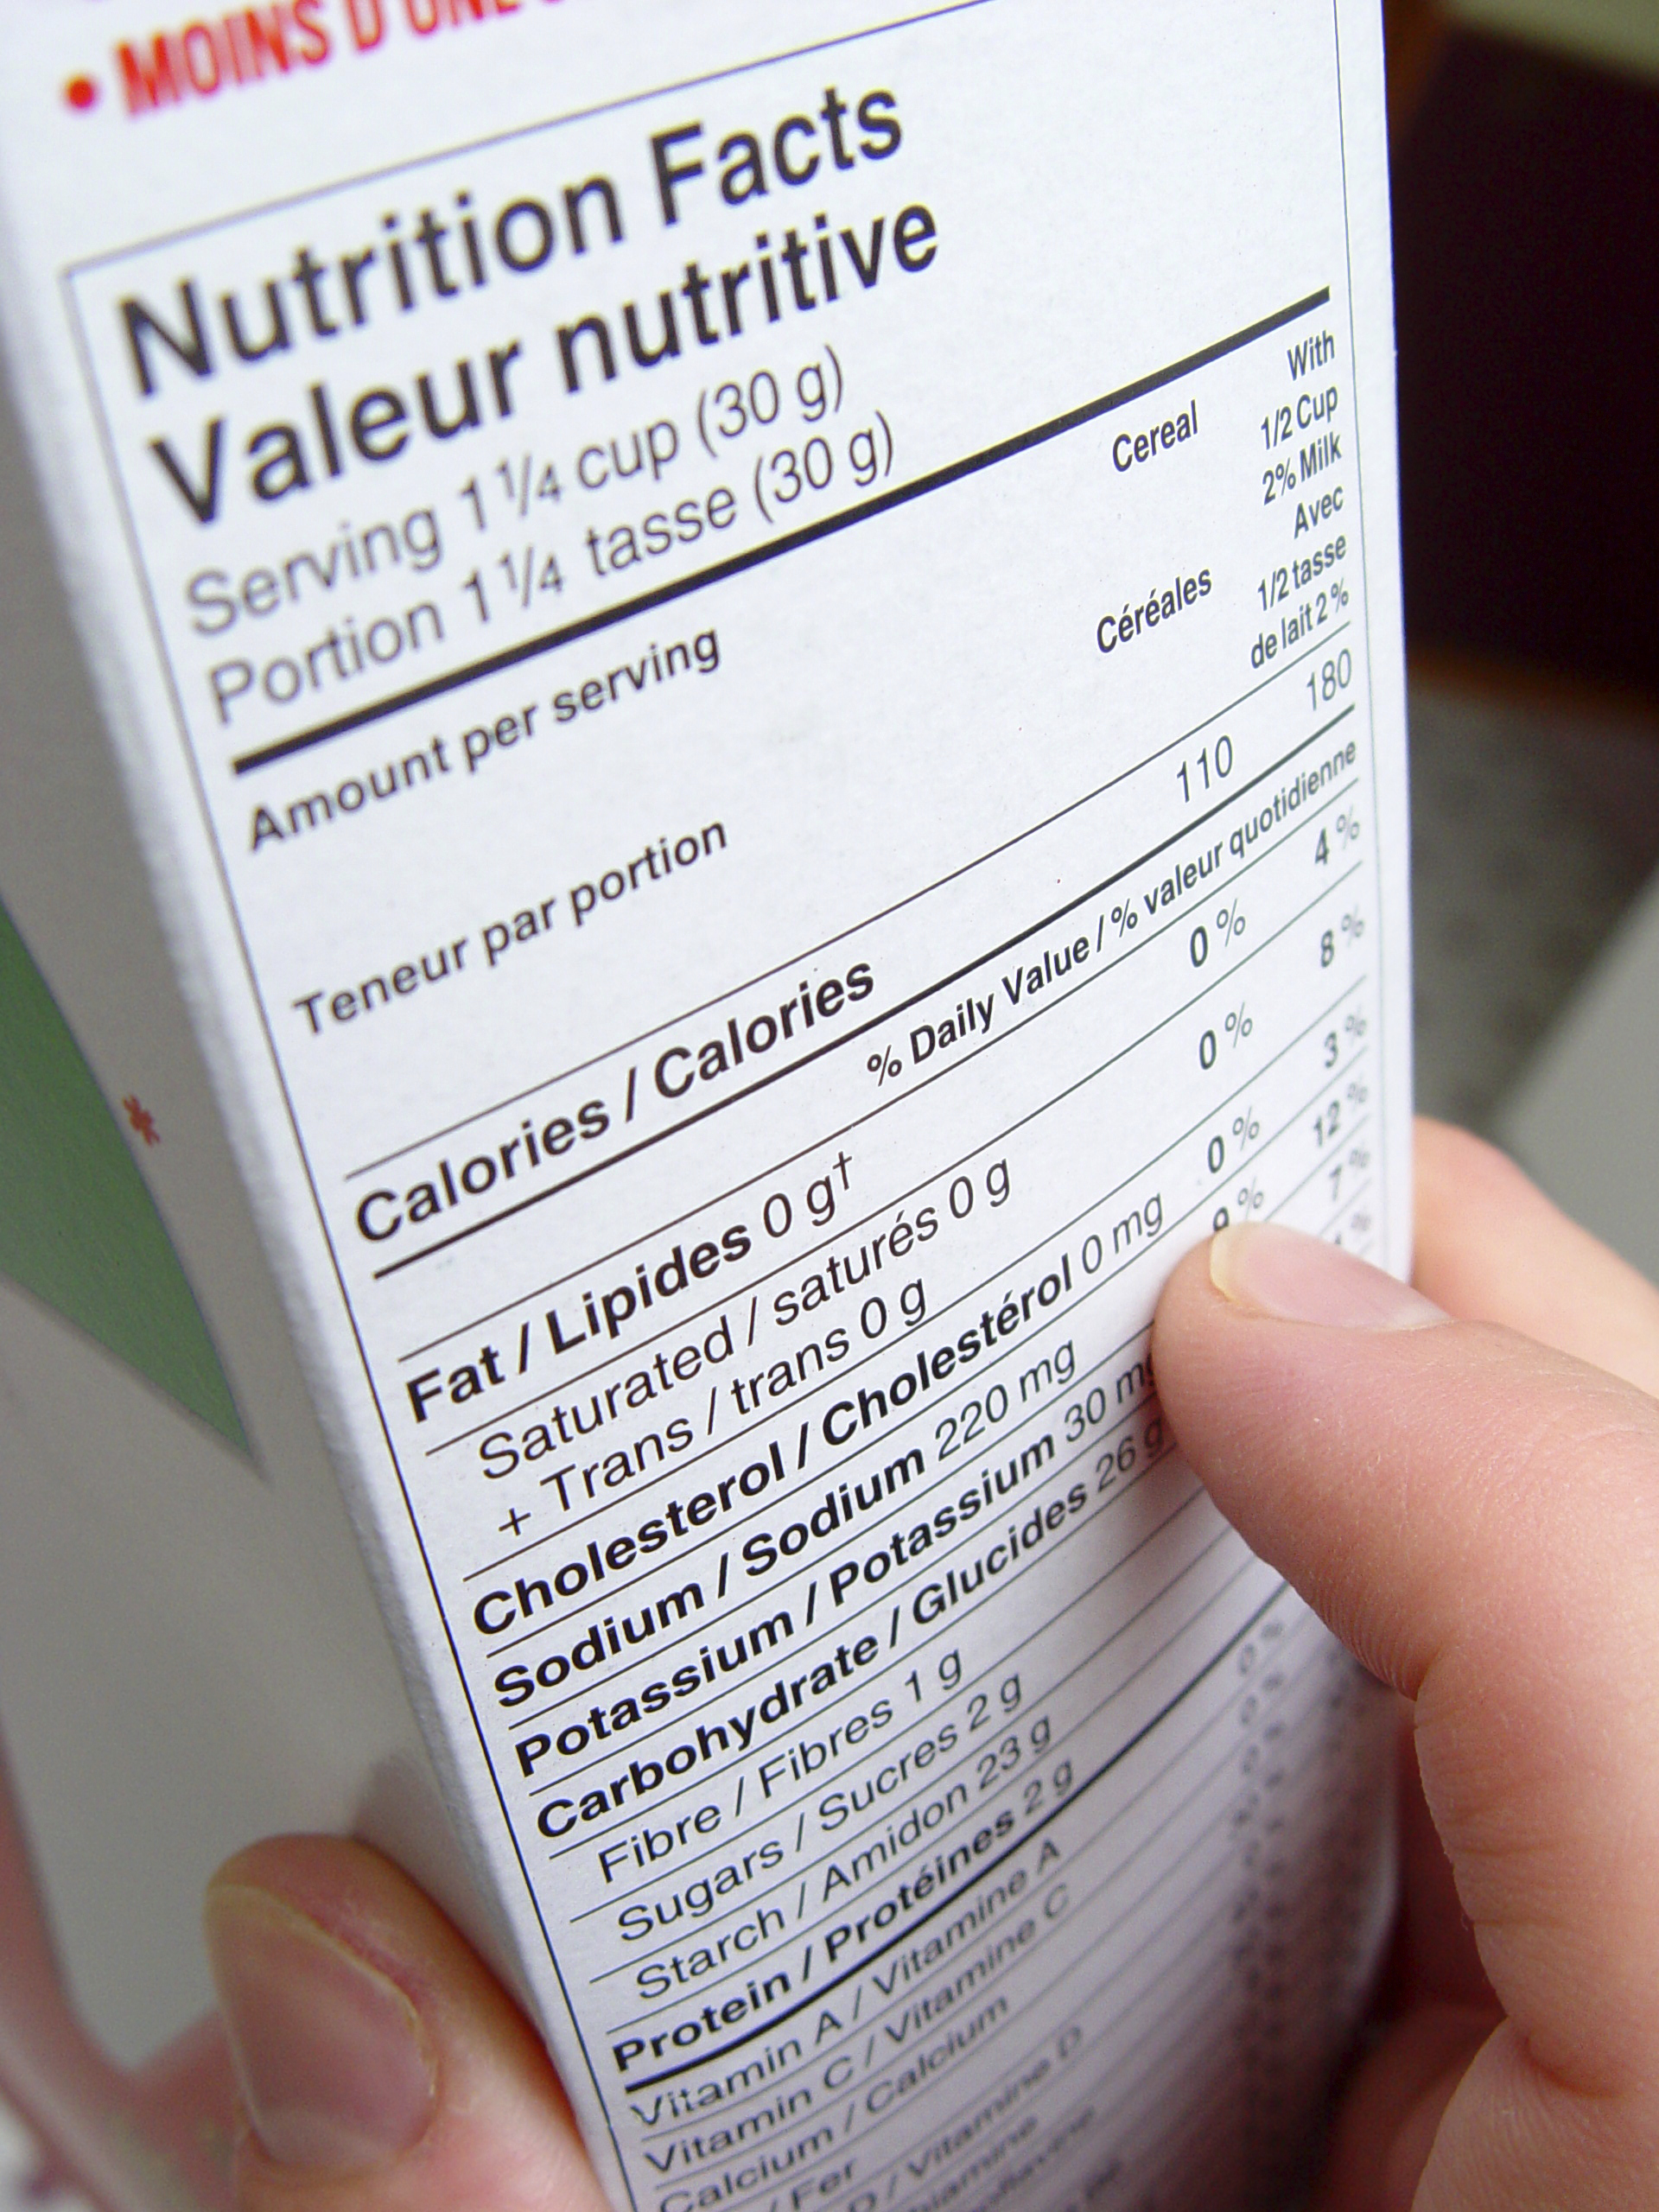 Tip of the Week: Making Nutrition Information Easier for Those With Diabetes